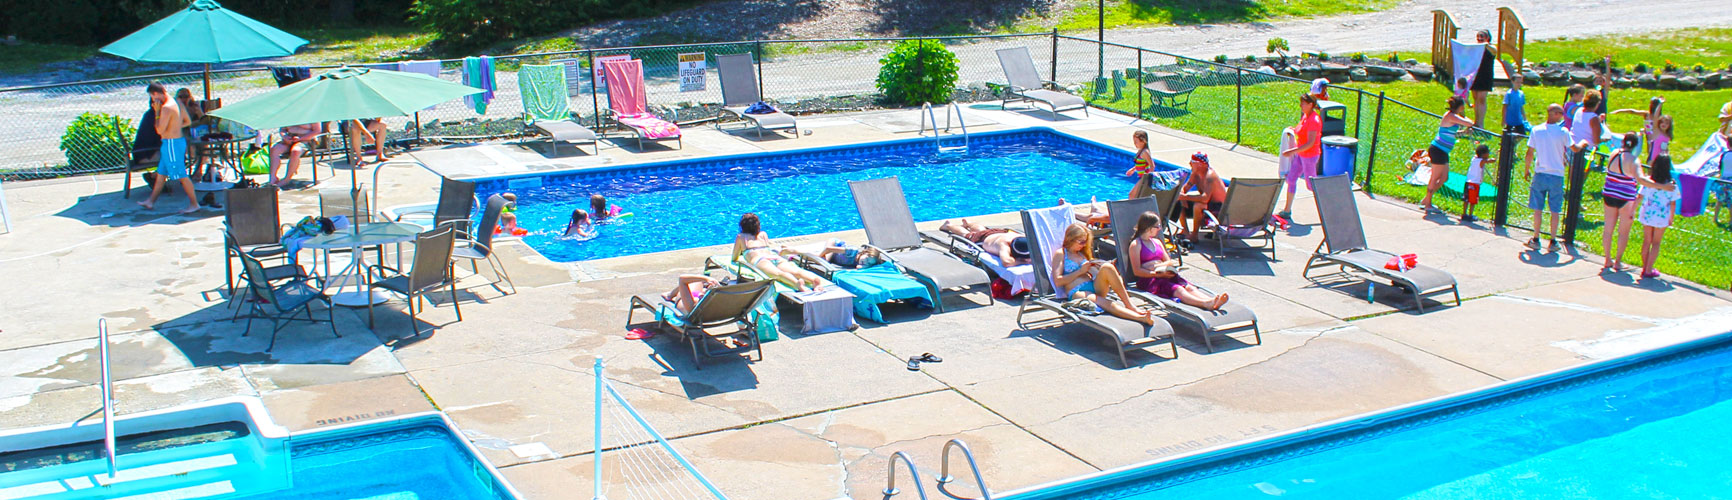 Hemlock Hill Camp Resort Pool